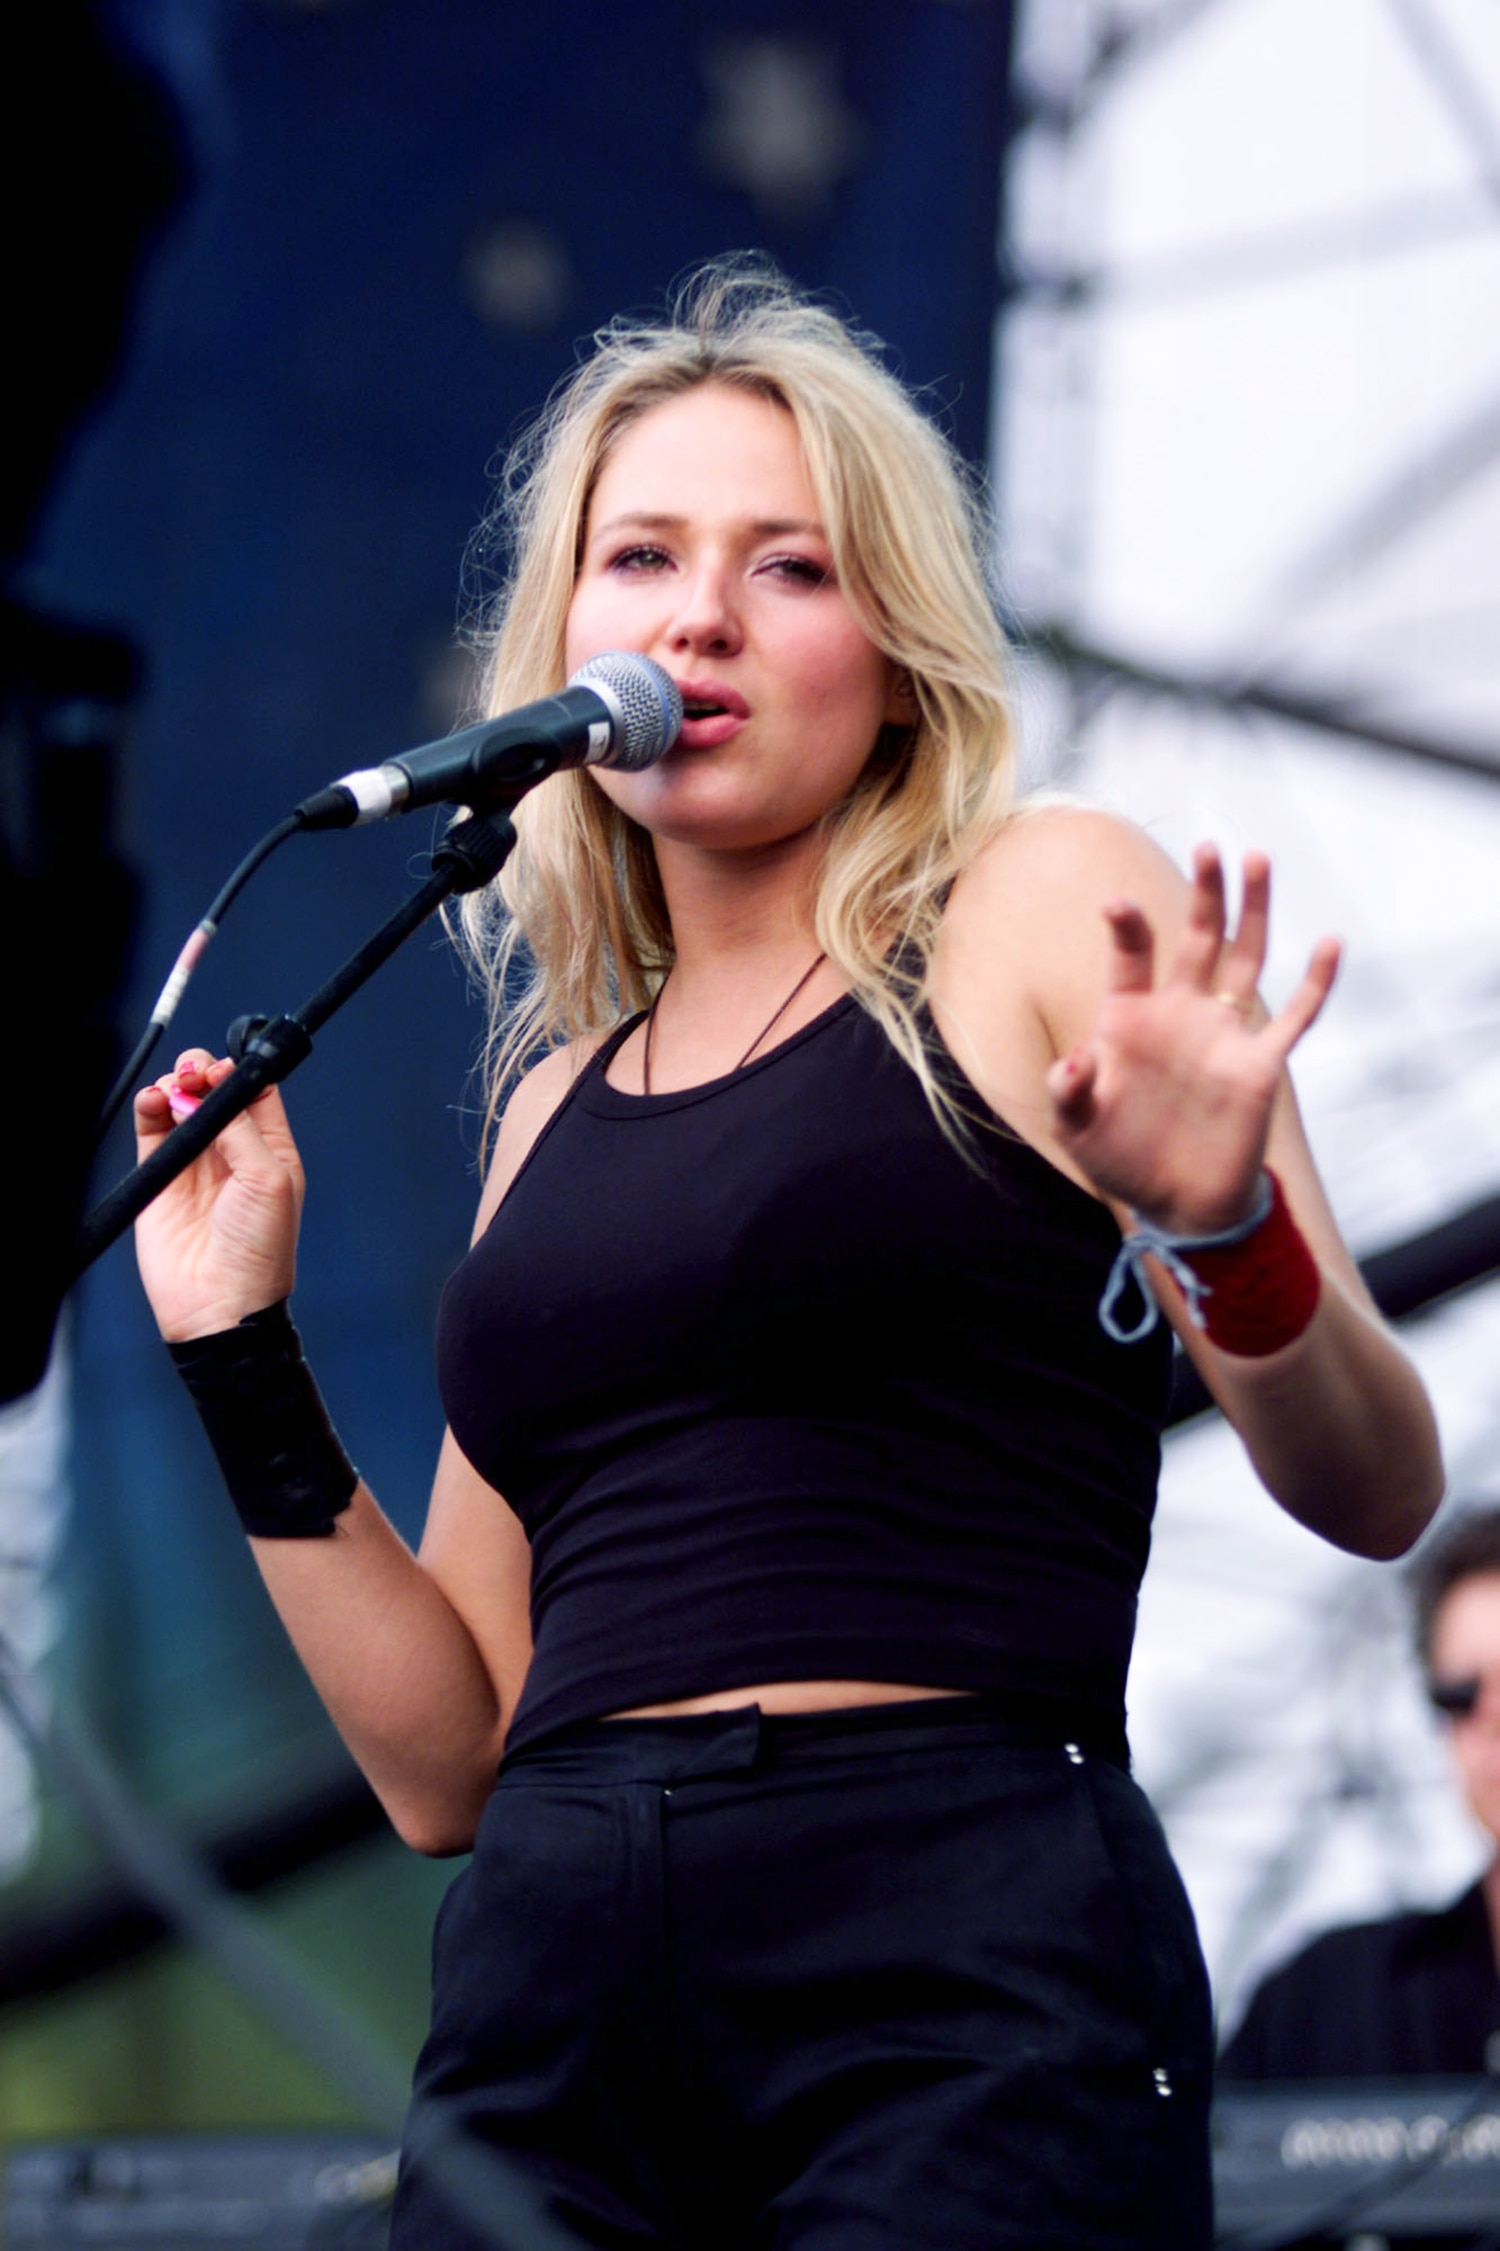 Jewel - PHOTO BY: Frank Micelotta/ImageDirect/Getty Images